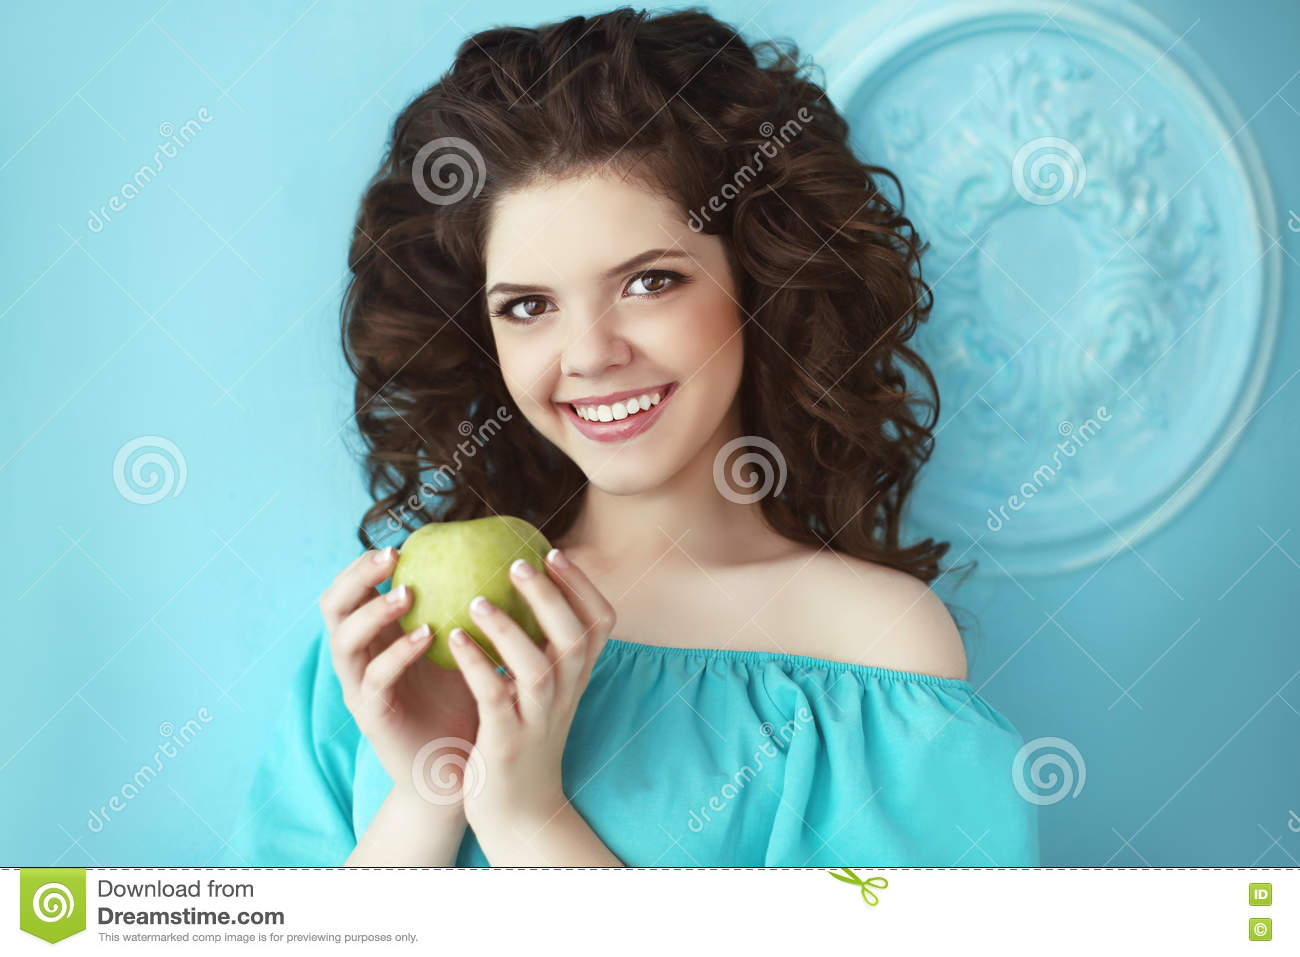 Beautiful Happy Teen Smiling Girl Holding Green Apple Before The